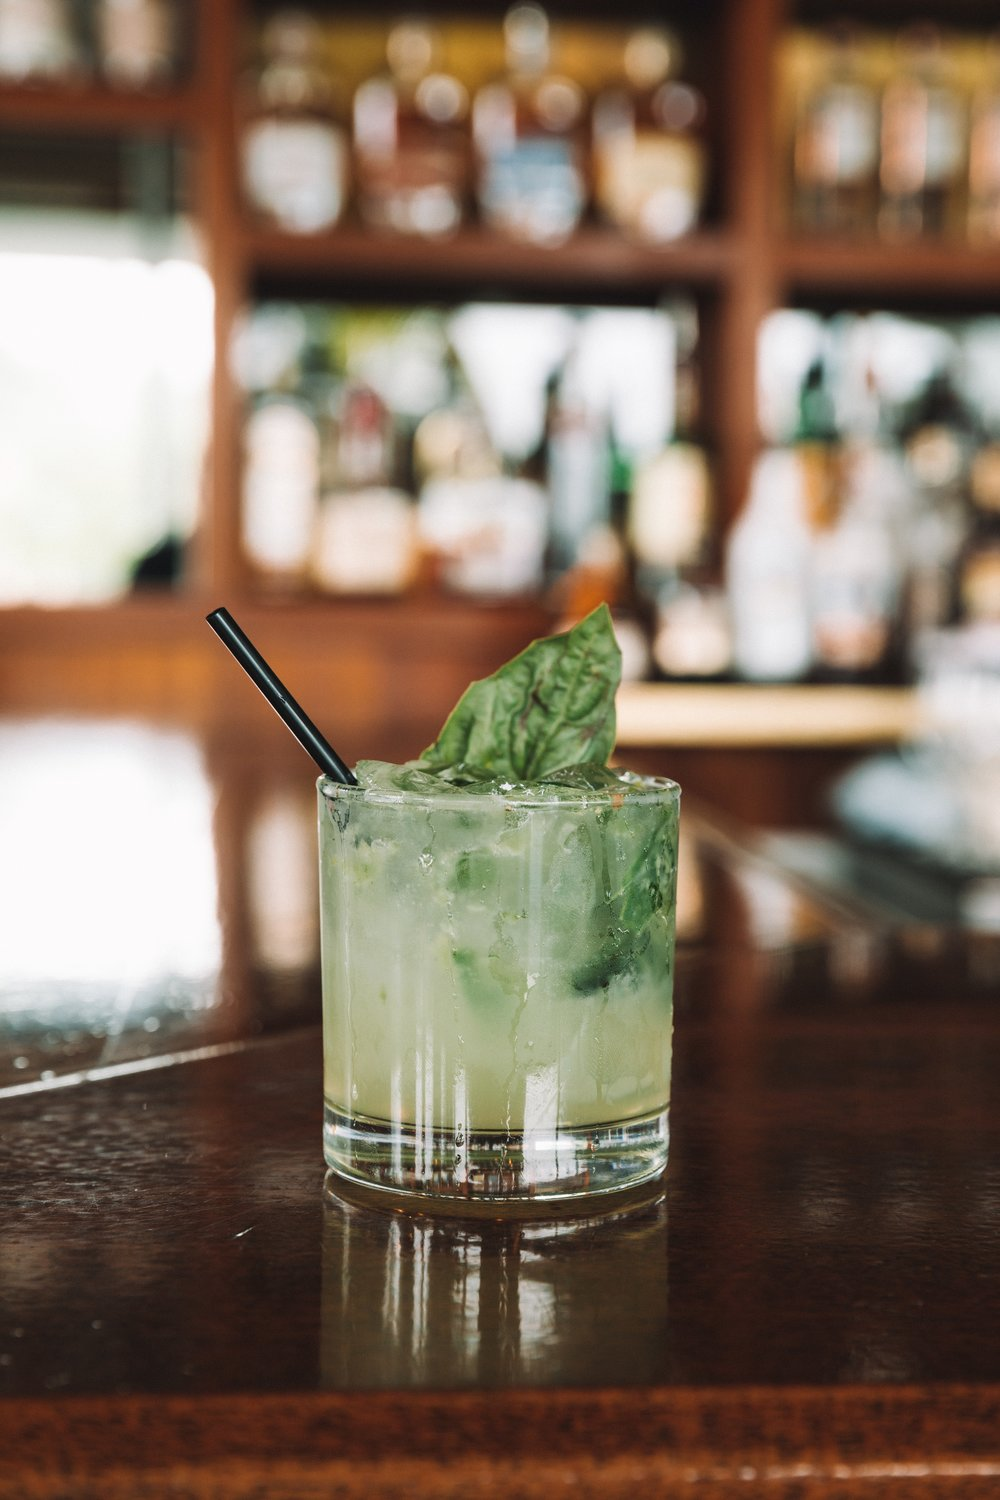 The Lobster's Famous Mojito